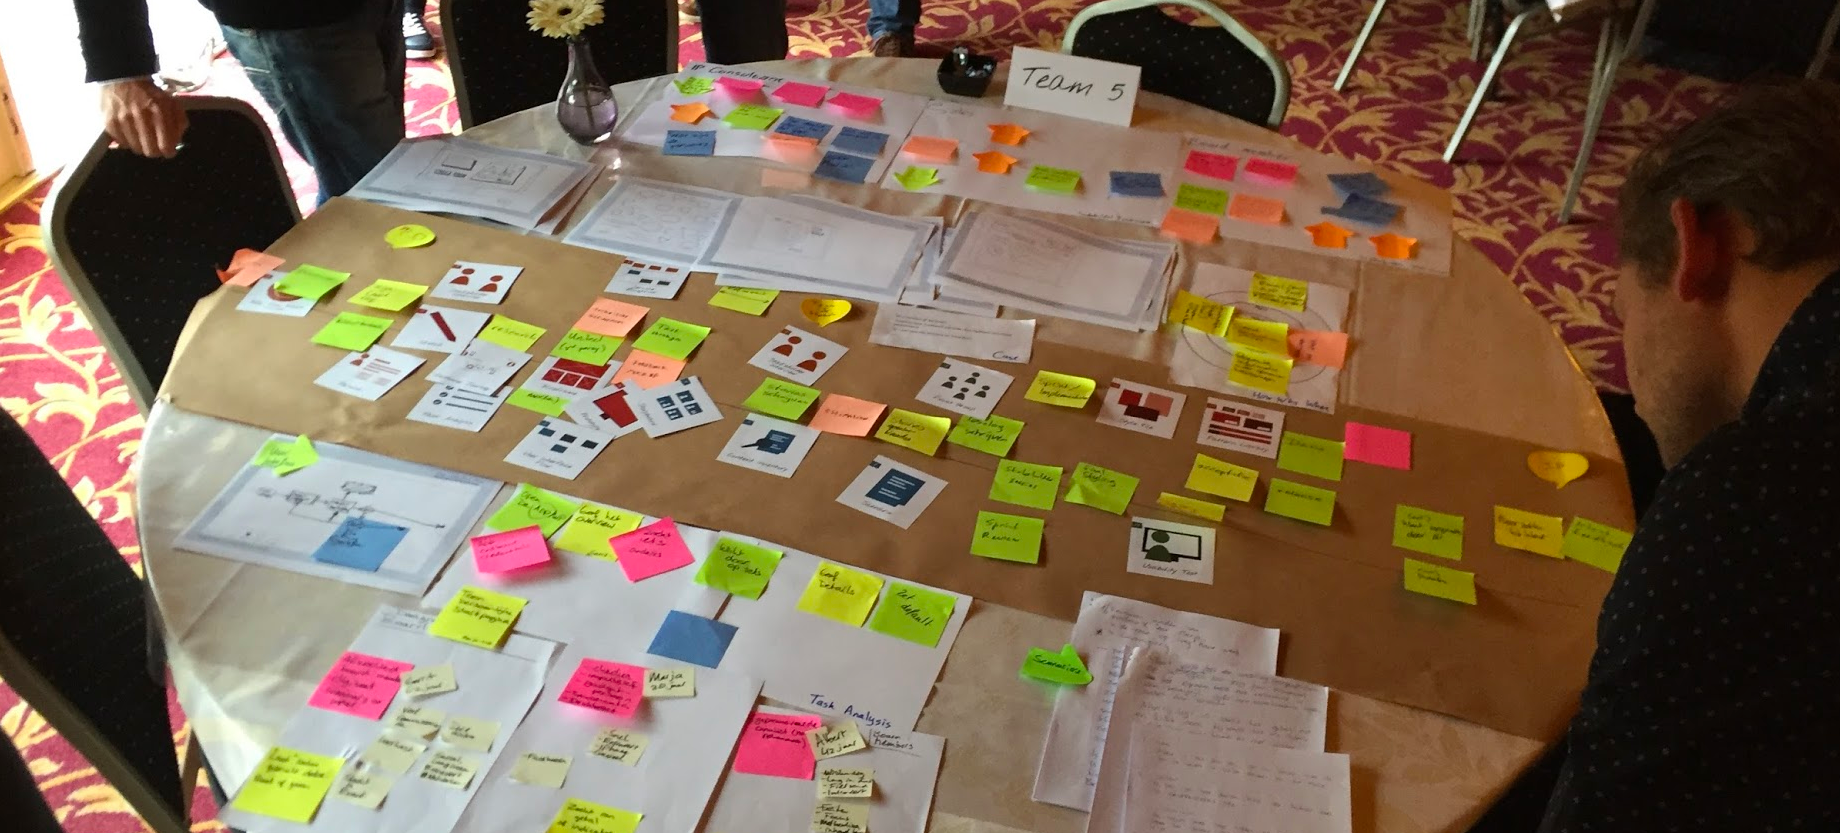 Results of a day hard work during the a full day workshop on Service & UX Design